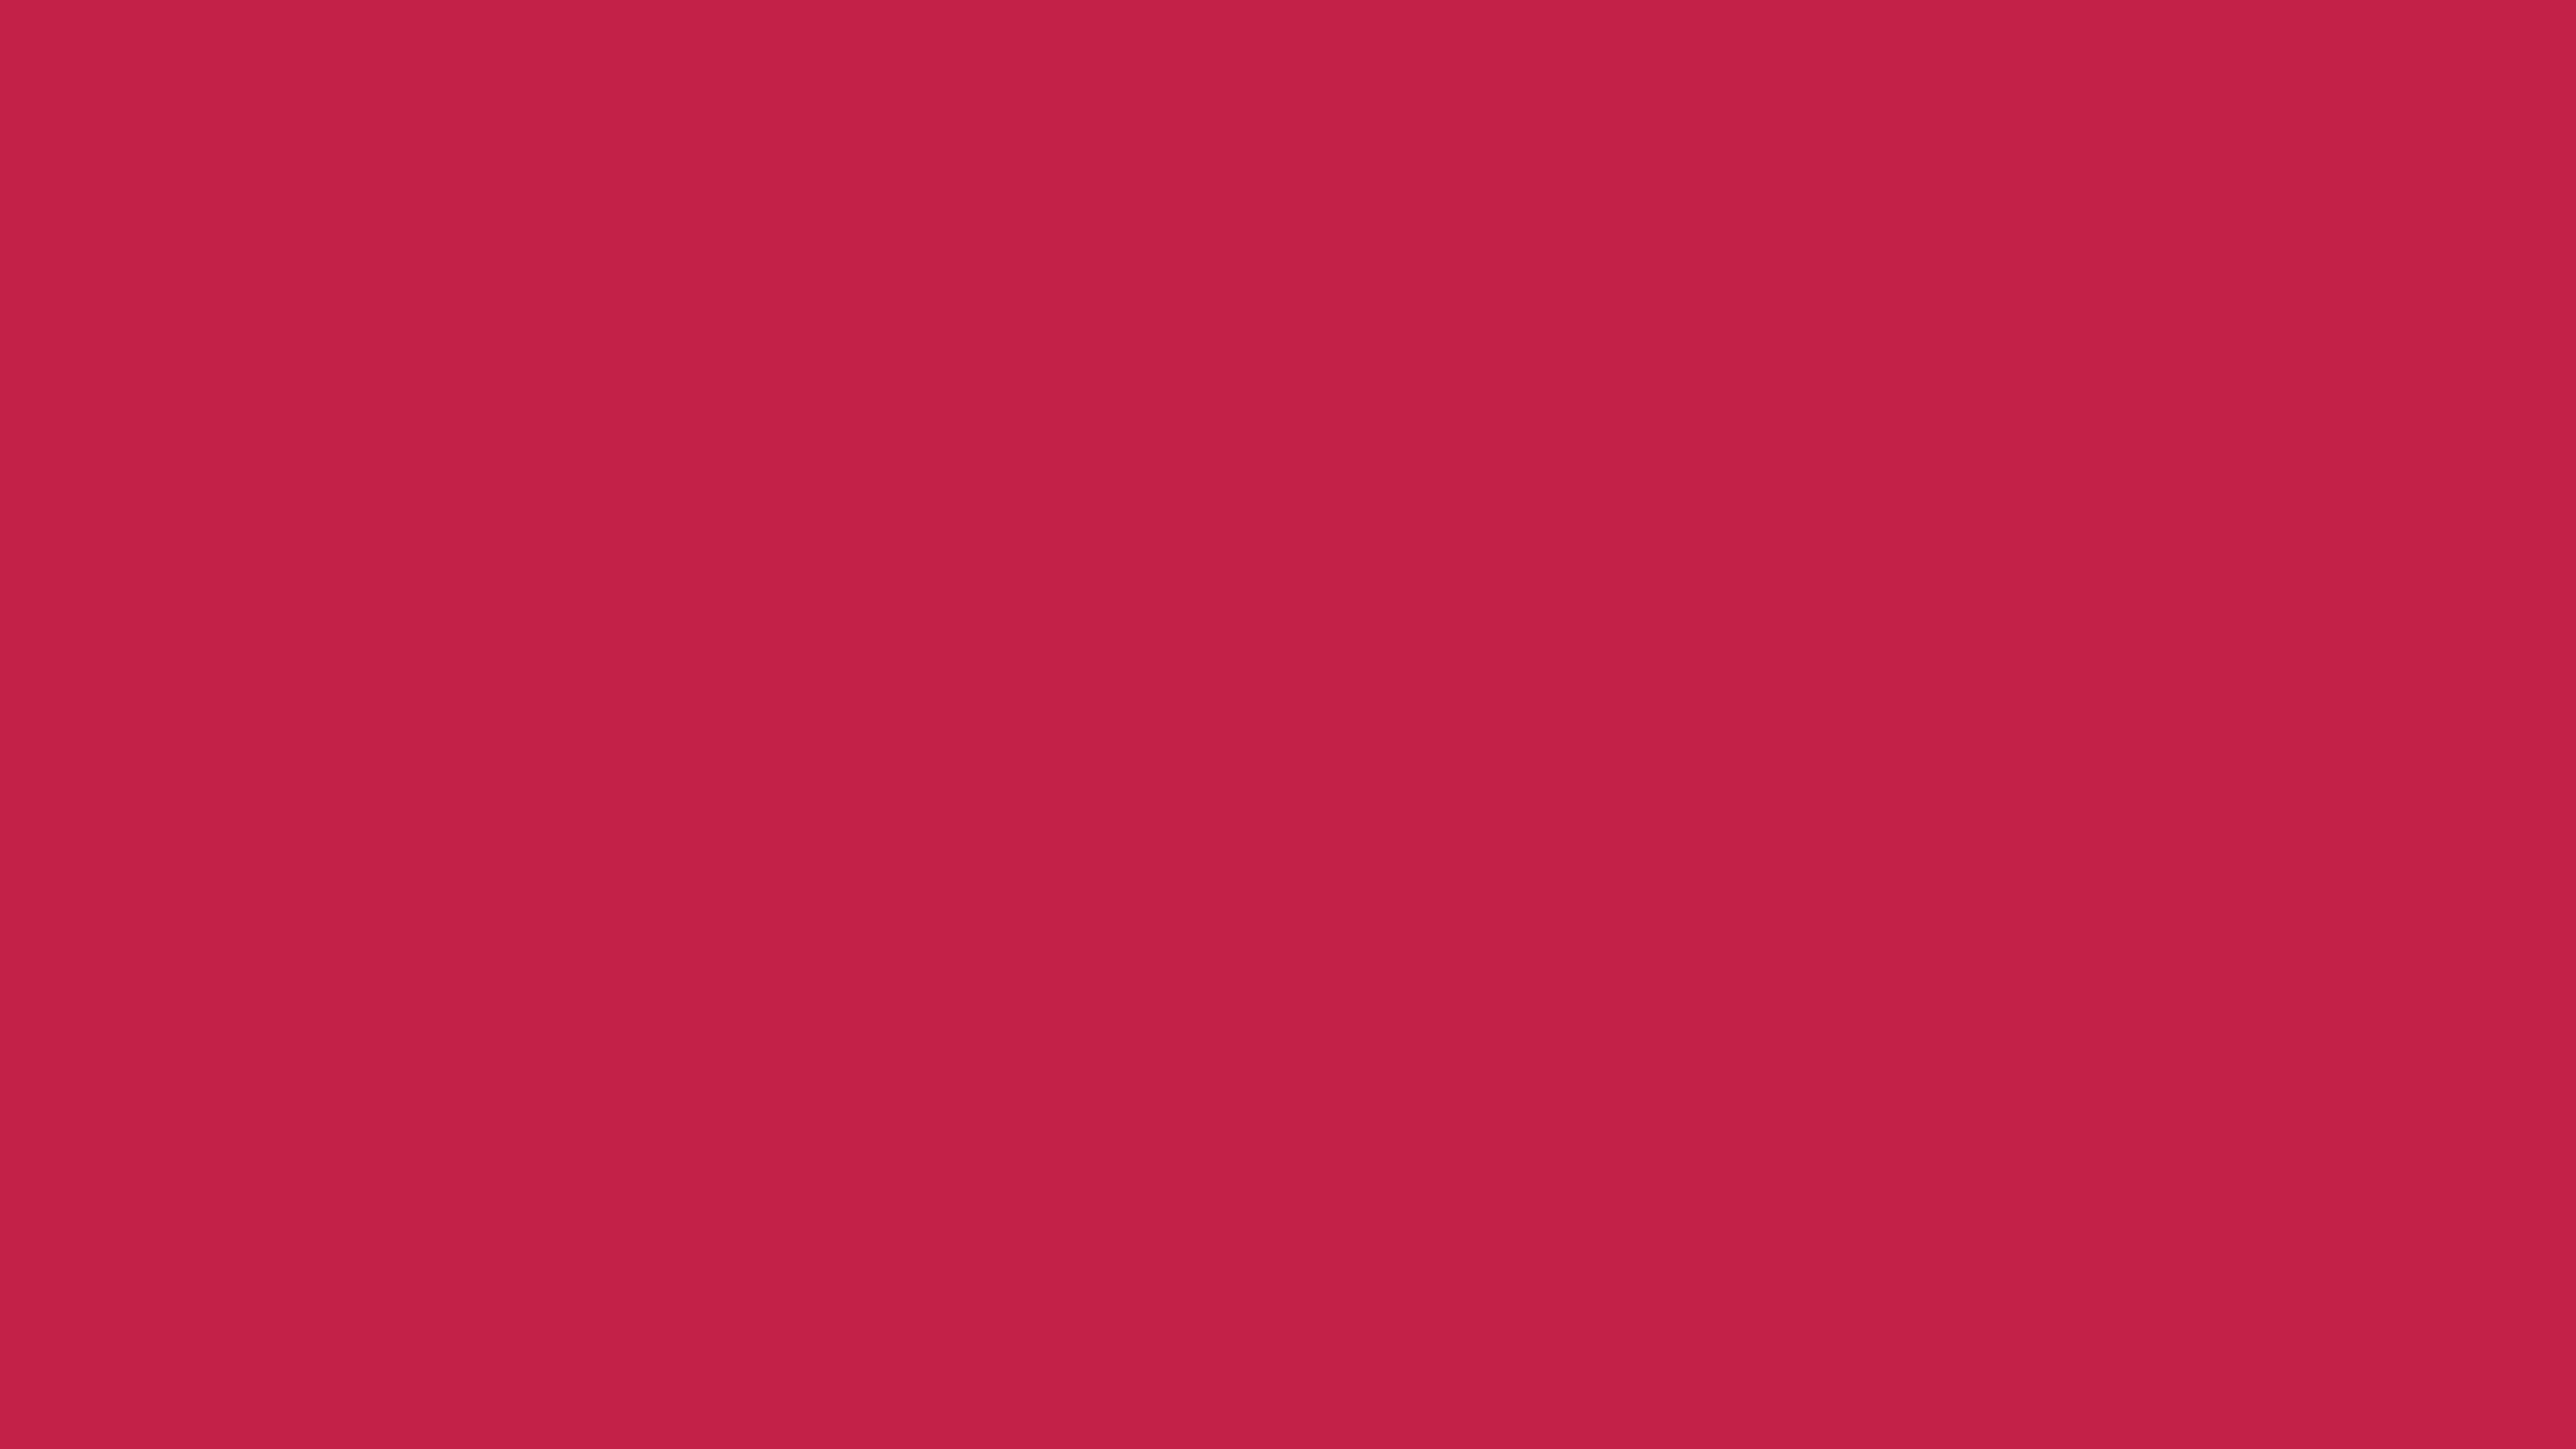 5120x2880 Bright Maroon Solid Color Background